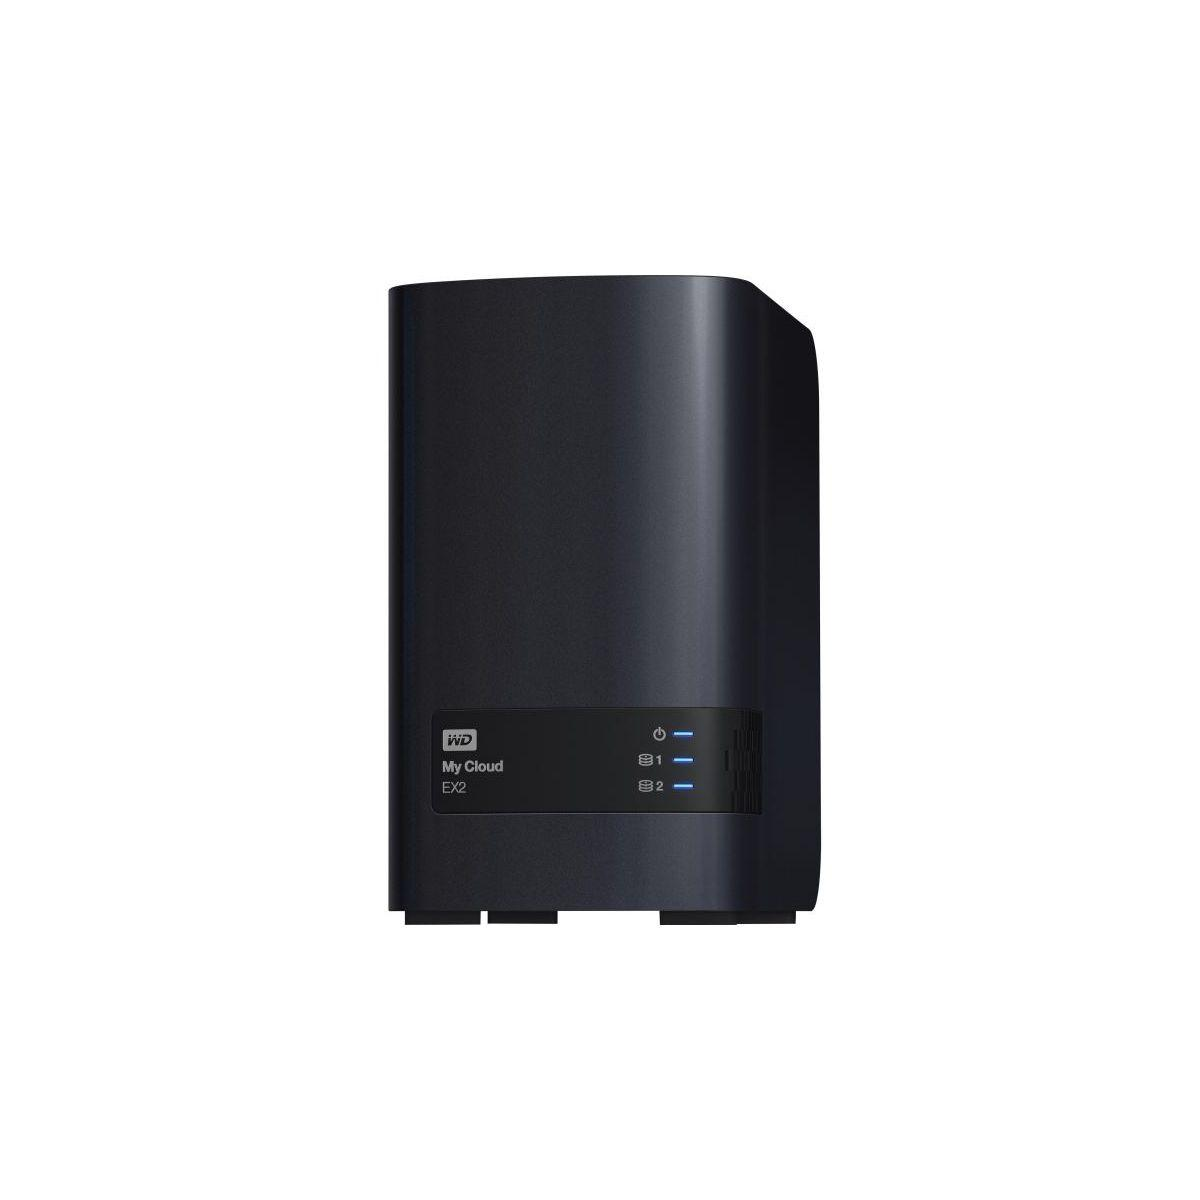 Serveur nas wd 8to my cloud ex2 ultra - 2% de remise imm?diate...